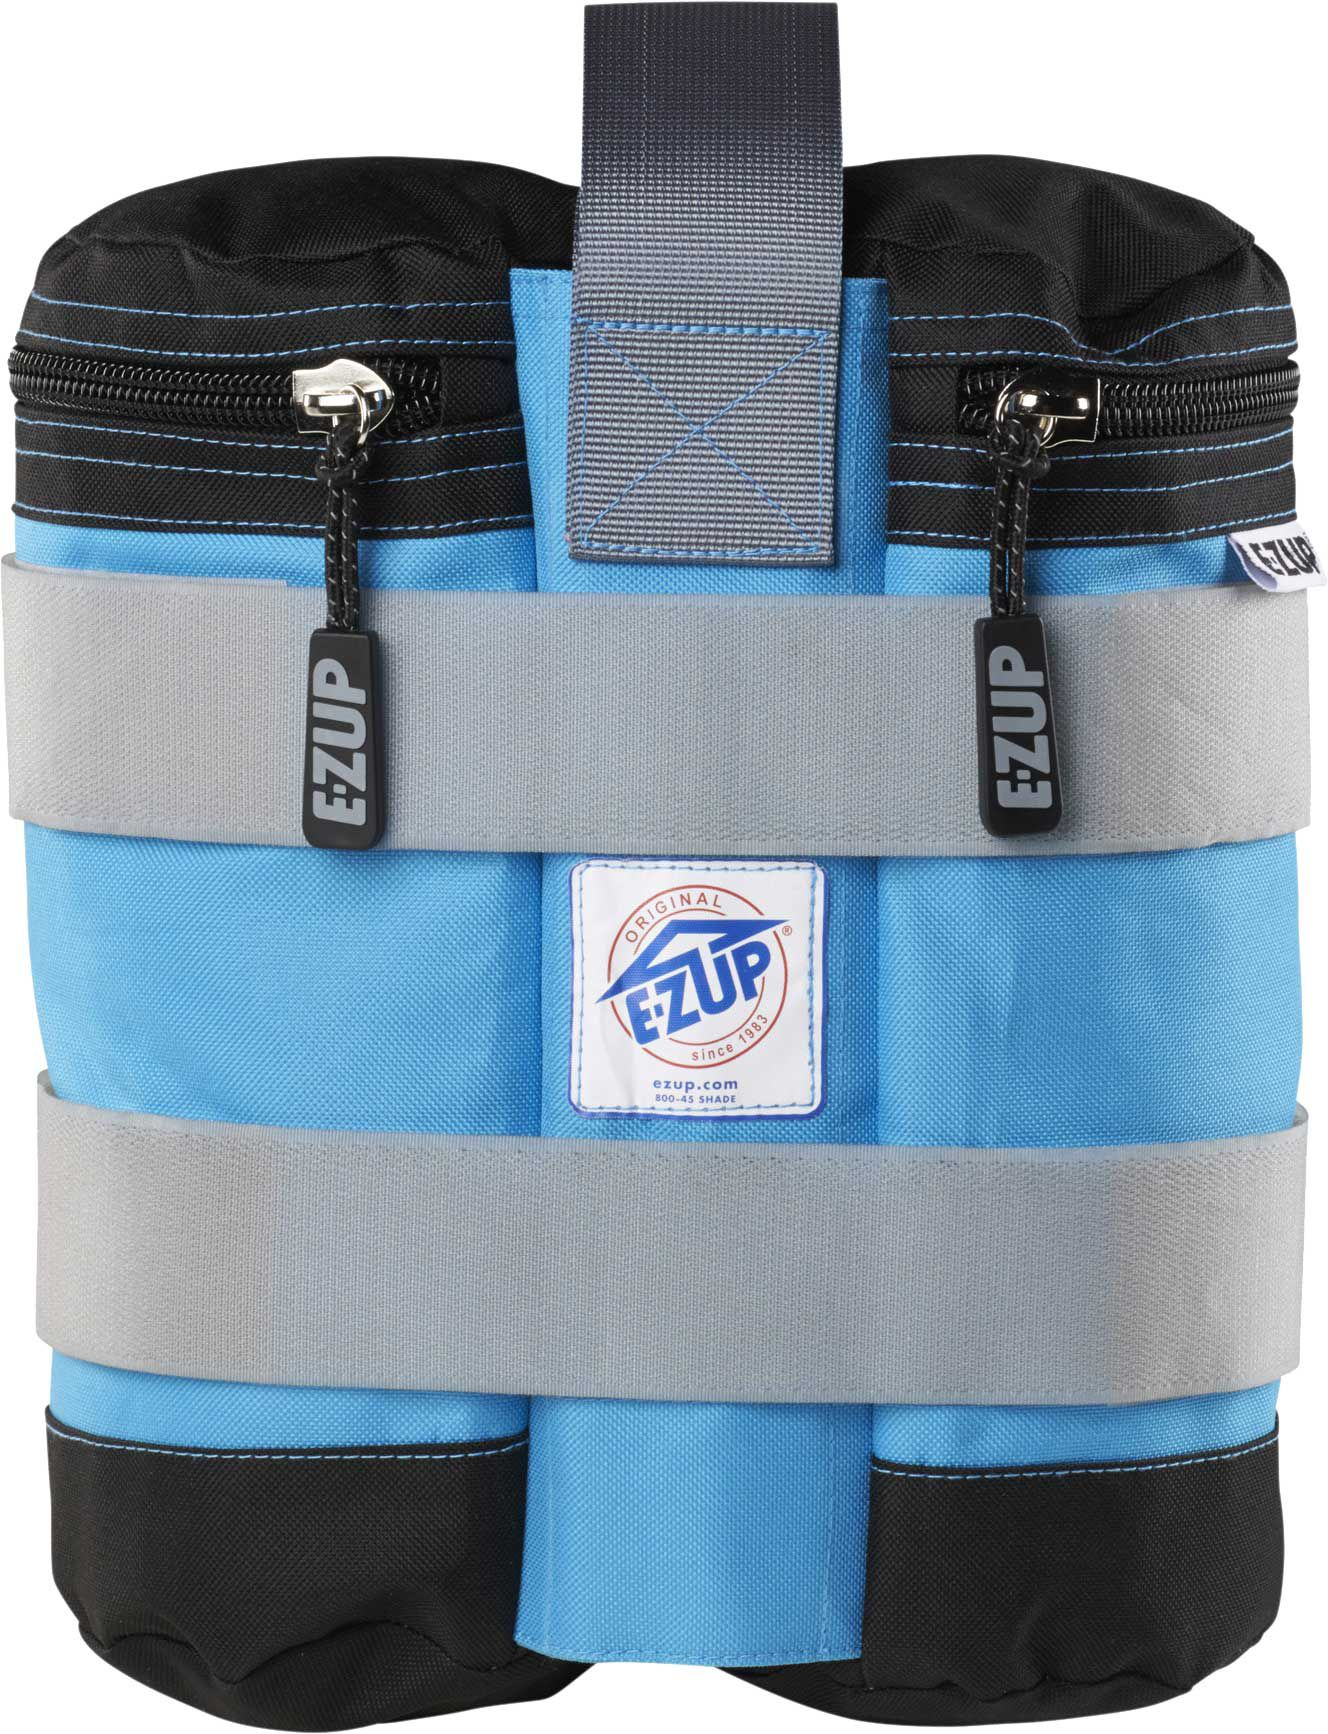 & E-Z UP Canopy Weight Bags | DICKu0027S Sporting Goods